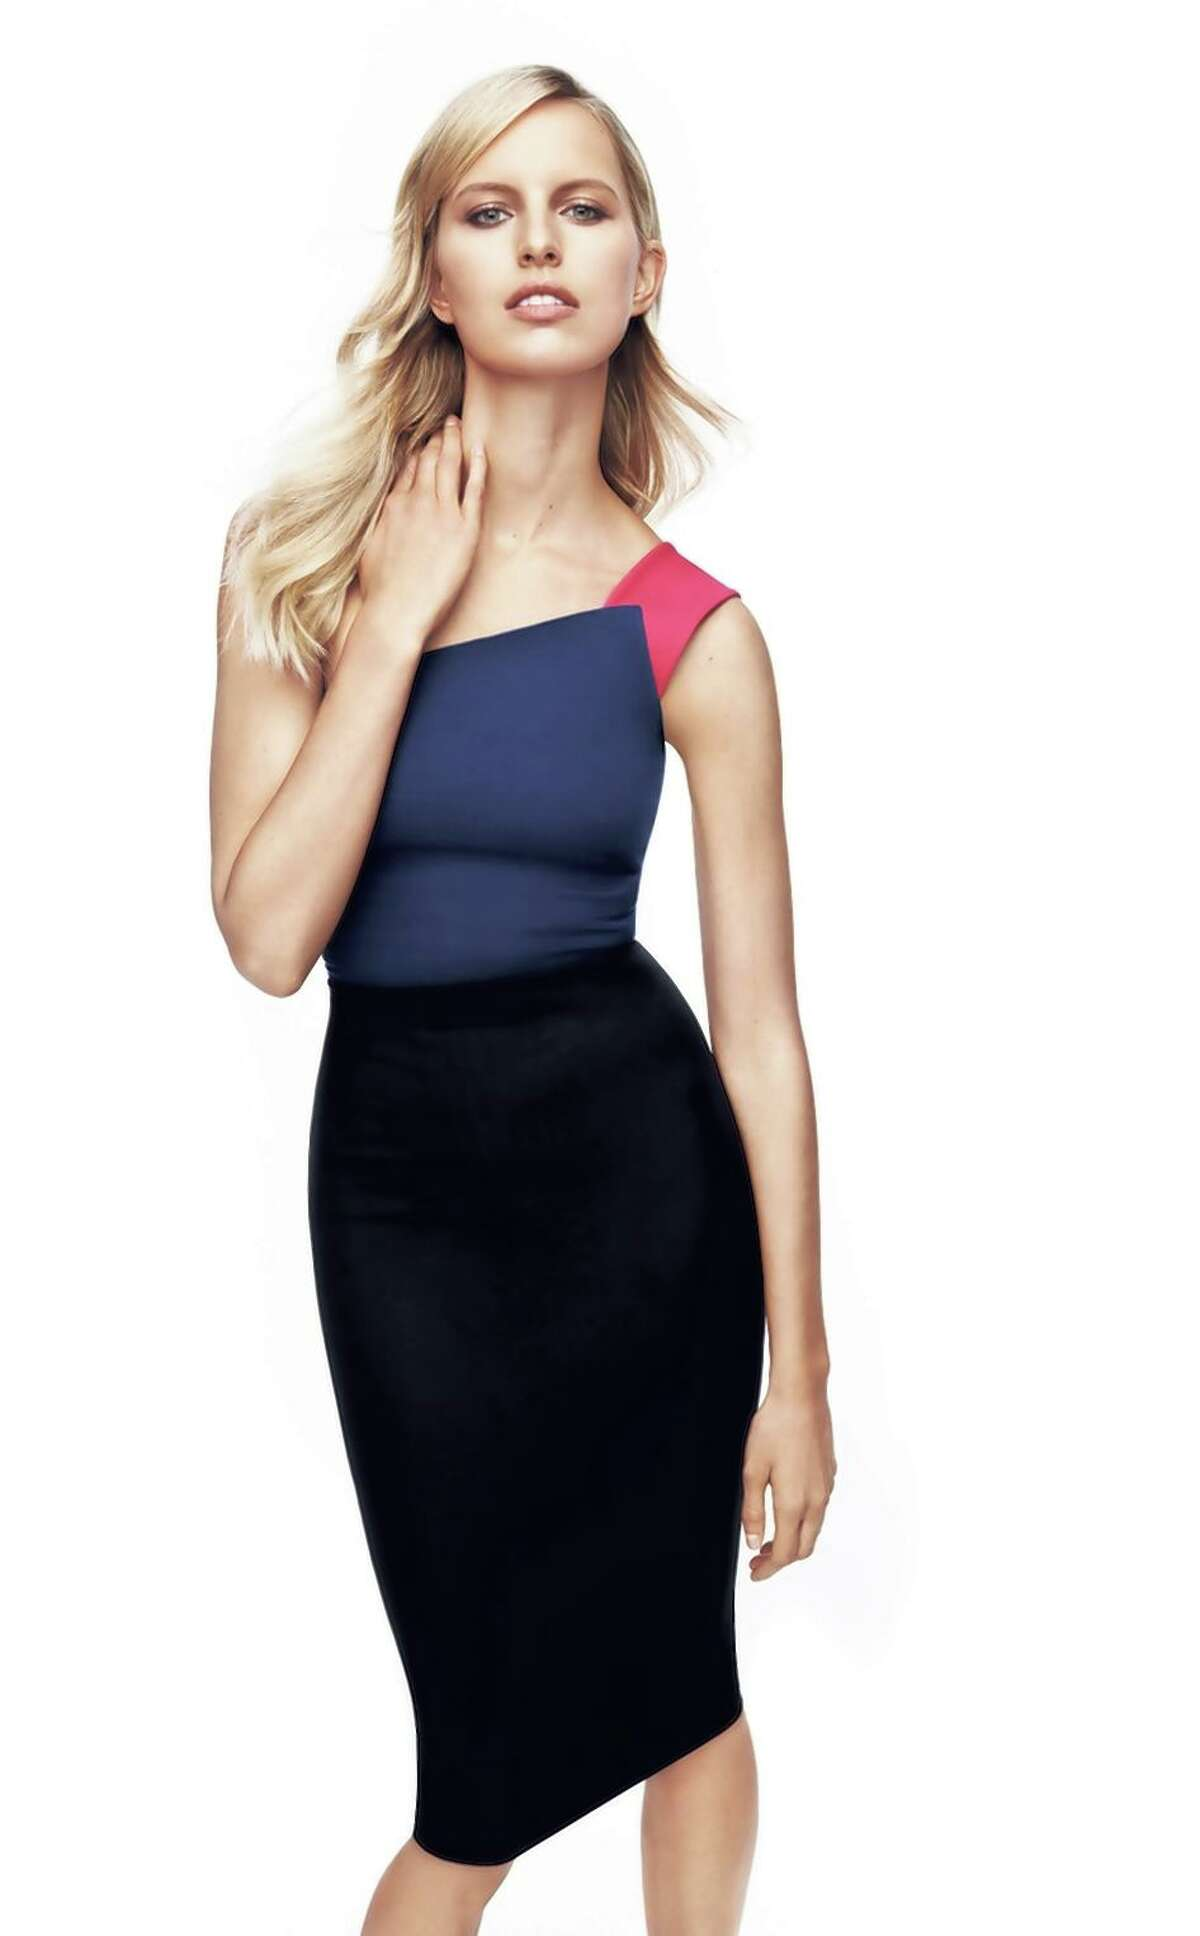 Roland Mouret has created a 30-piece capsule collection for Banana Republic.